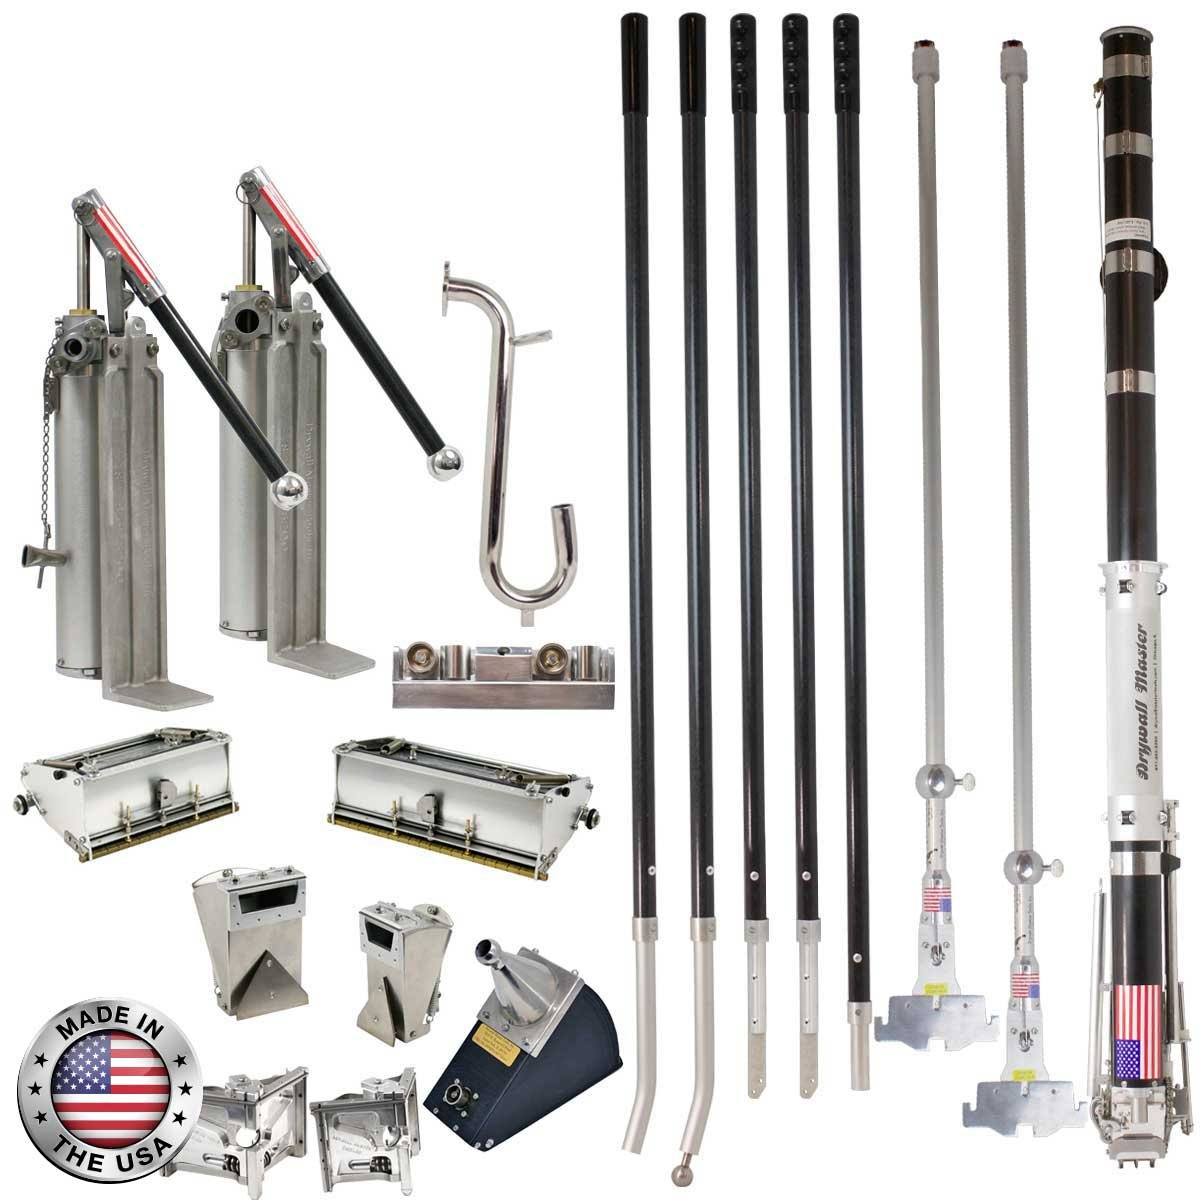 Drywall Master 7/10 Ultimate Pro Automatic Taping and Finishing Set - Taper, 2 Pumps, 7/10 Boxes, 2 Nail Spotters, Corner Tools, Handles